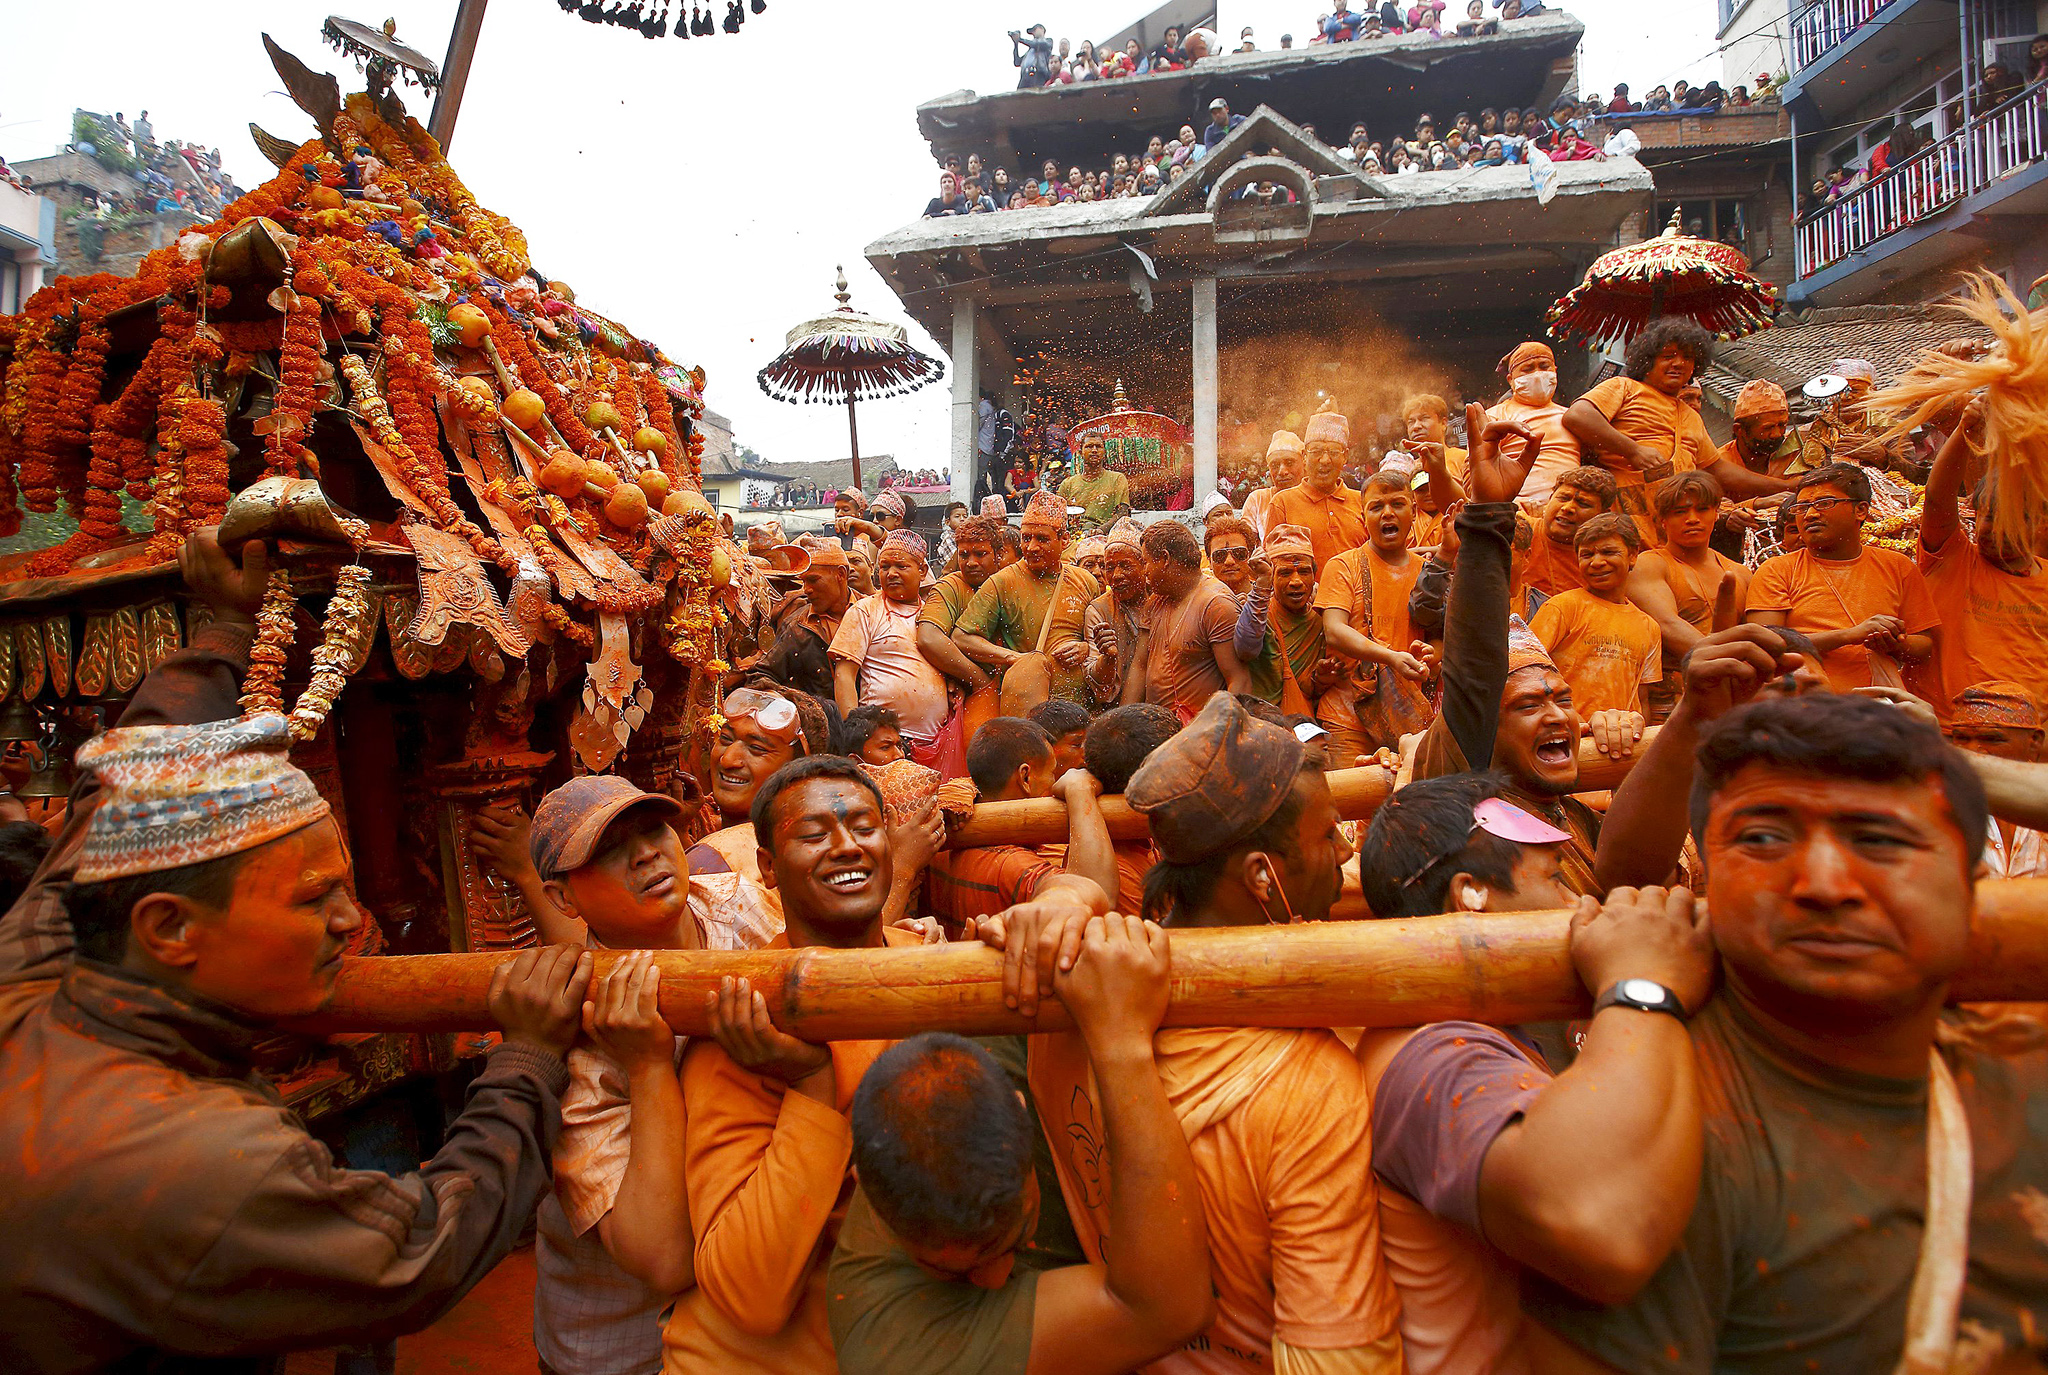 "Devotees celebrate ""Sindoor Jatra"" vermillion powder festival at Thimi...Devotees celebrate ""Sindoor Jatra"" vermillion powder festival at Thimi, in Bhaktapur April 15, 2015. The festival is celebrated by singing, dancing, playing traditional instruments, carrying chariots of various deities around the town, offering prayers and throwing vermilion powder over each other to mark the Nepalese New Year and the beginning of the spring season in the country. REUTERS/Navesh Chitrakar"